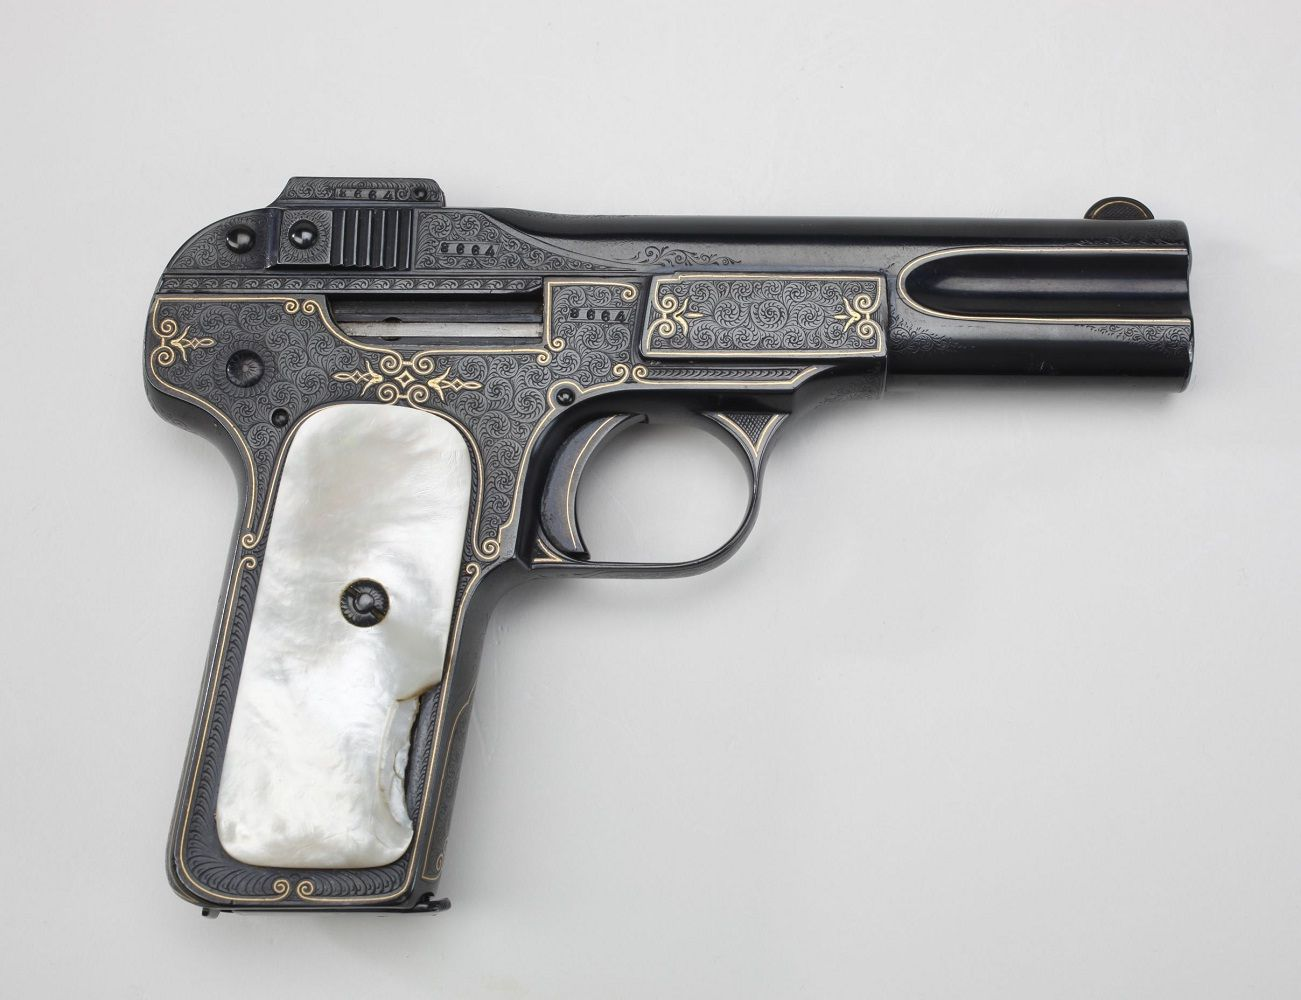 Teddy roosevelt guns to be displayed at nra national - Find This Pin And More On Antique Rare And Luxury Guns Theodore Roosevelt